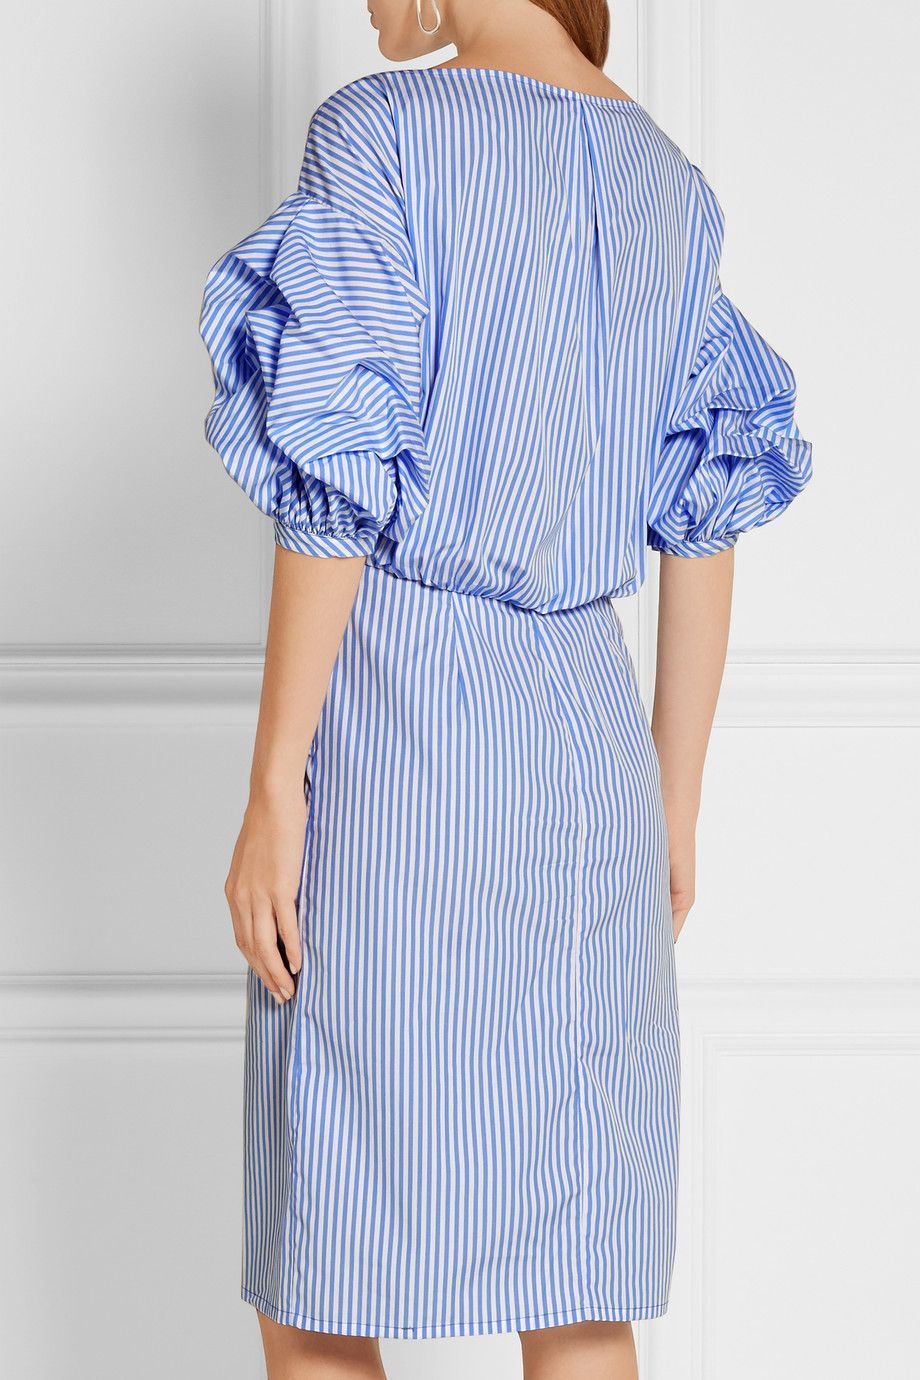 Johanna Ortiz Tuxedo Wrap Effect Striped Cotton Poplin Shirt Dress